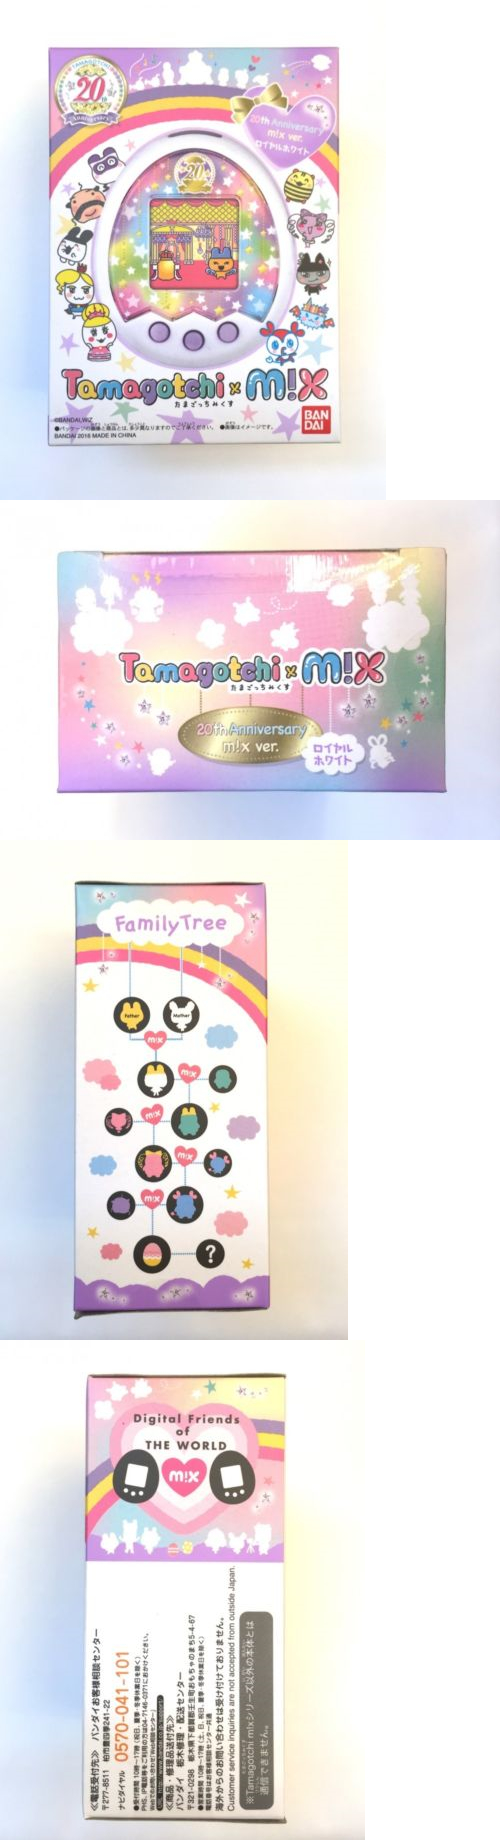 Pin by jamie schumacher on tamagotchi pinterest 20th anniversary ebay 20th anniversary free shipping royals royalty 20th birthday royal families geenschuldenfo Image collections